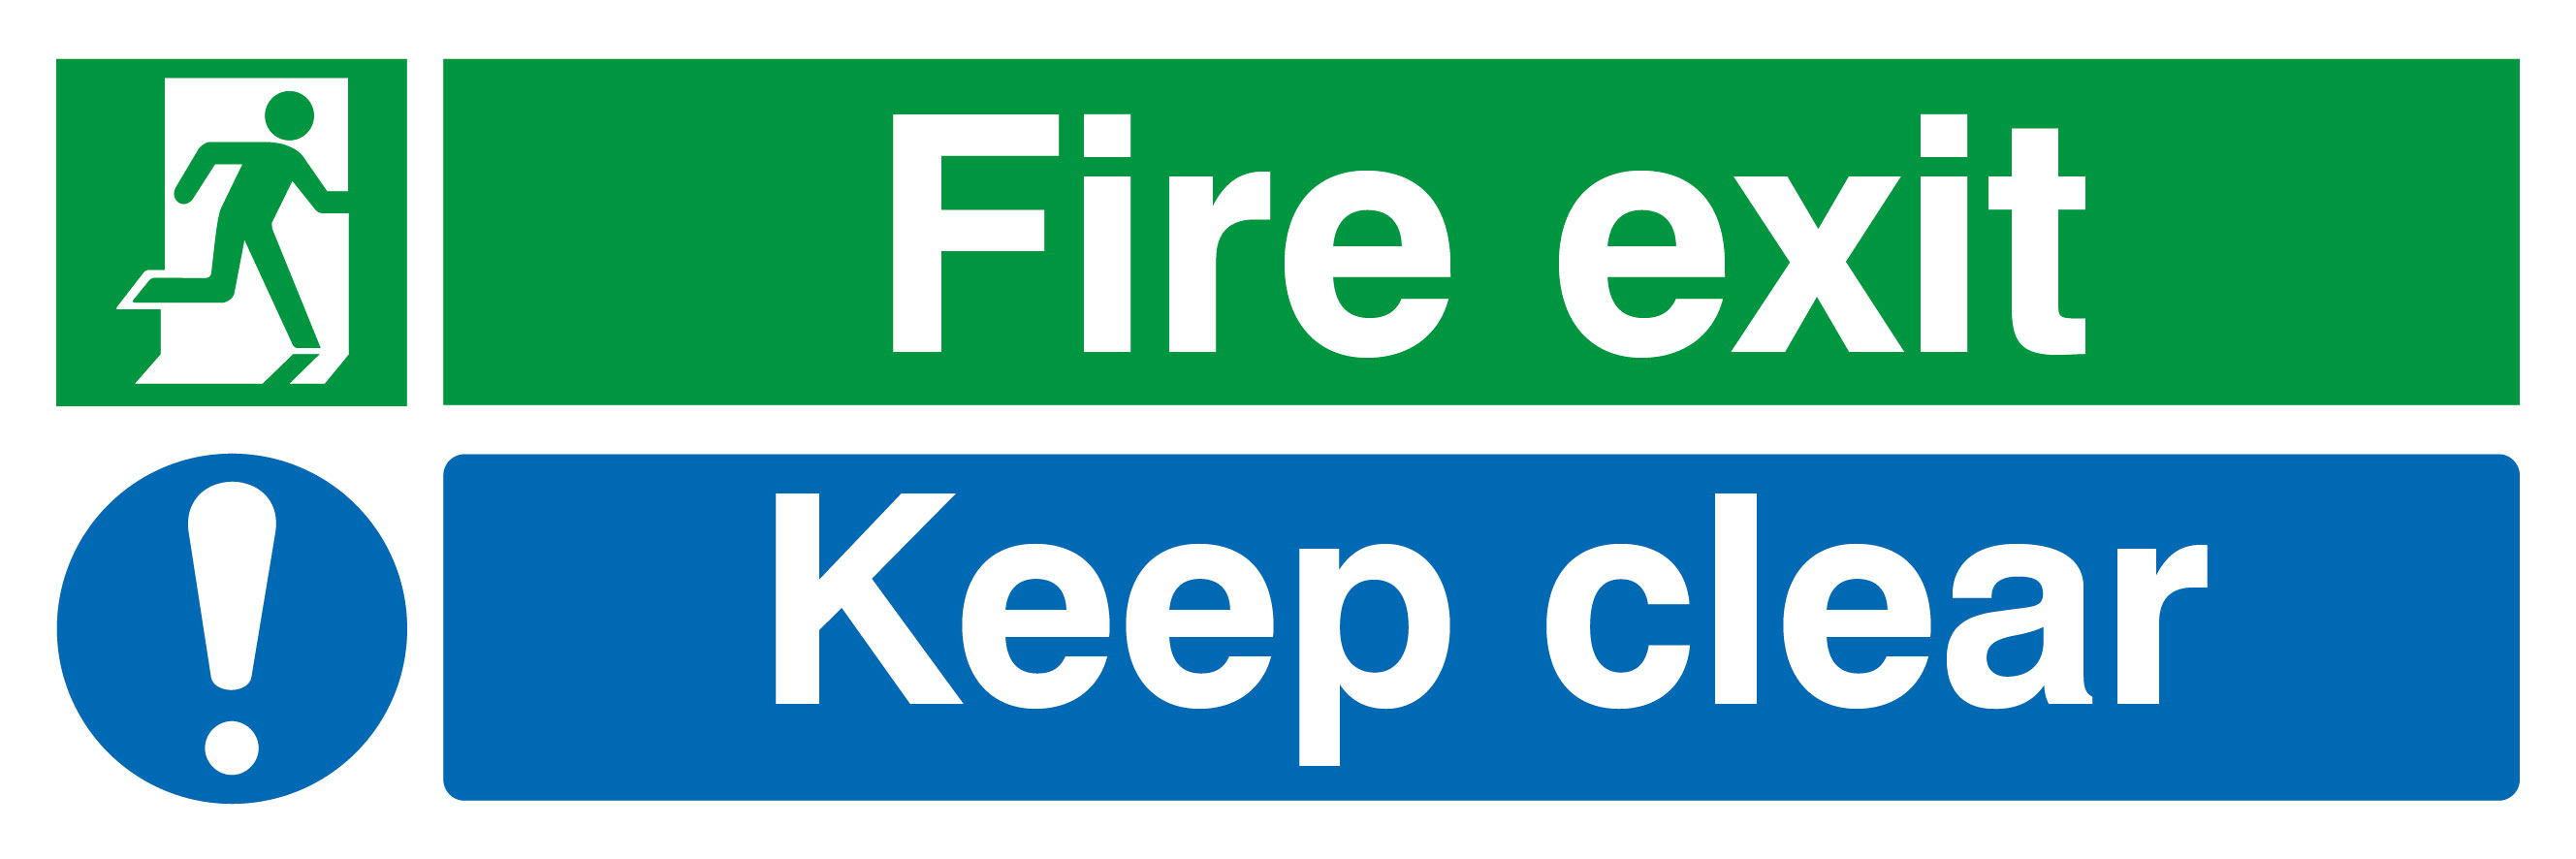 150 x 450 Fire exit keep clear 1.2mm rigid polypropylene sign